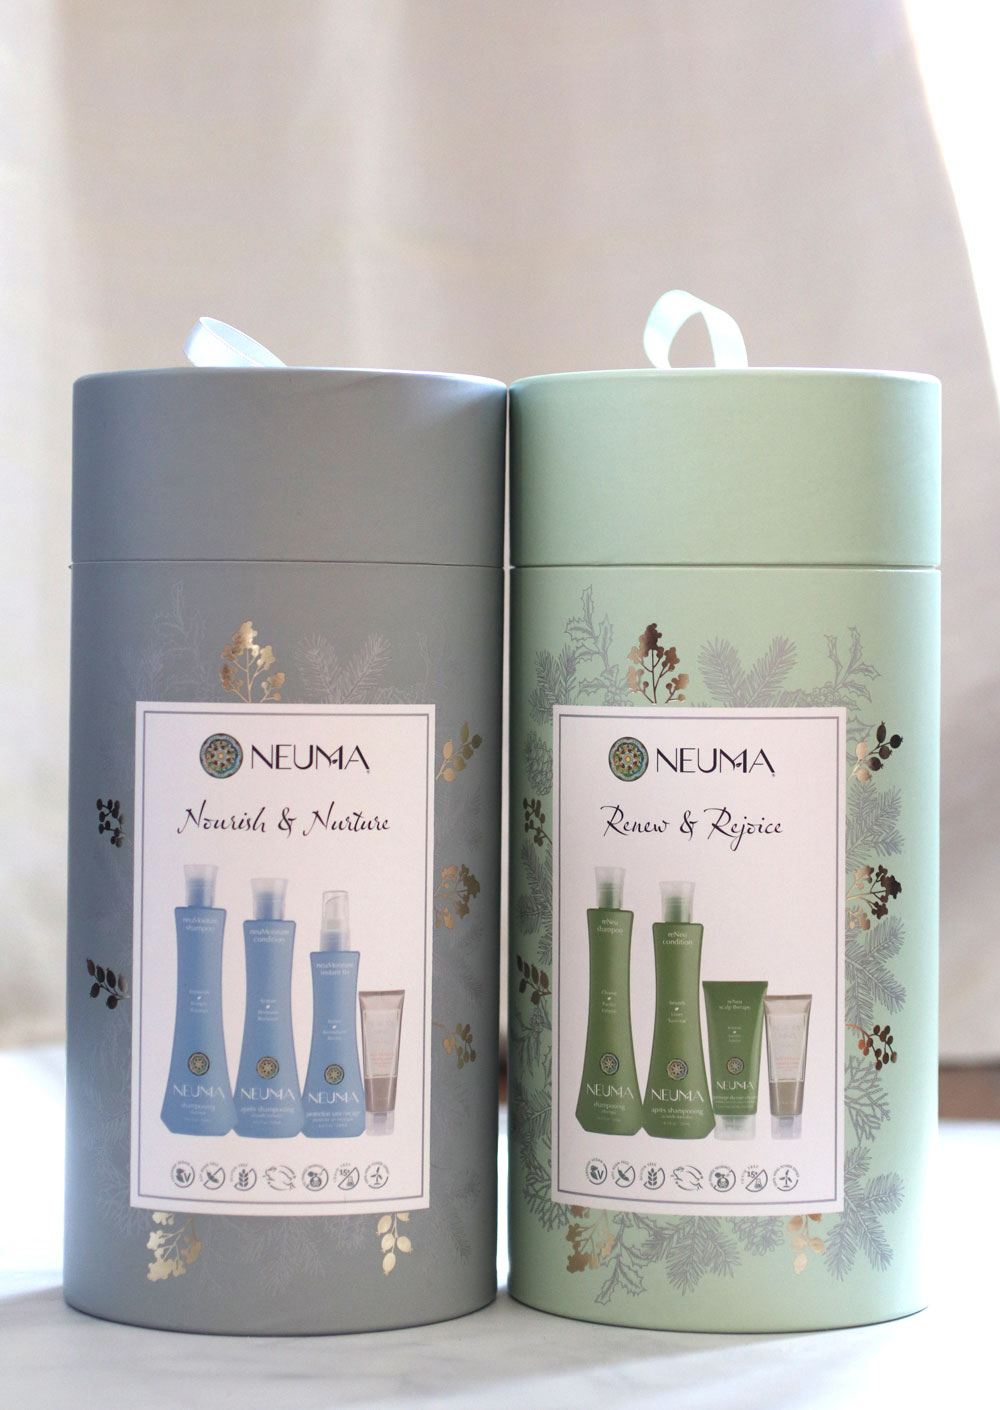 Cruelty Free Holiday Gift Guide 2020 - NEUMA vegan hair products gift sets